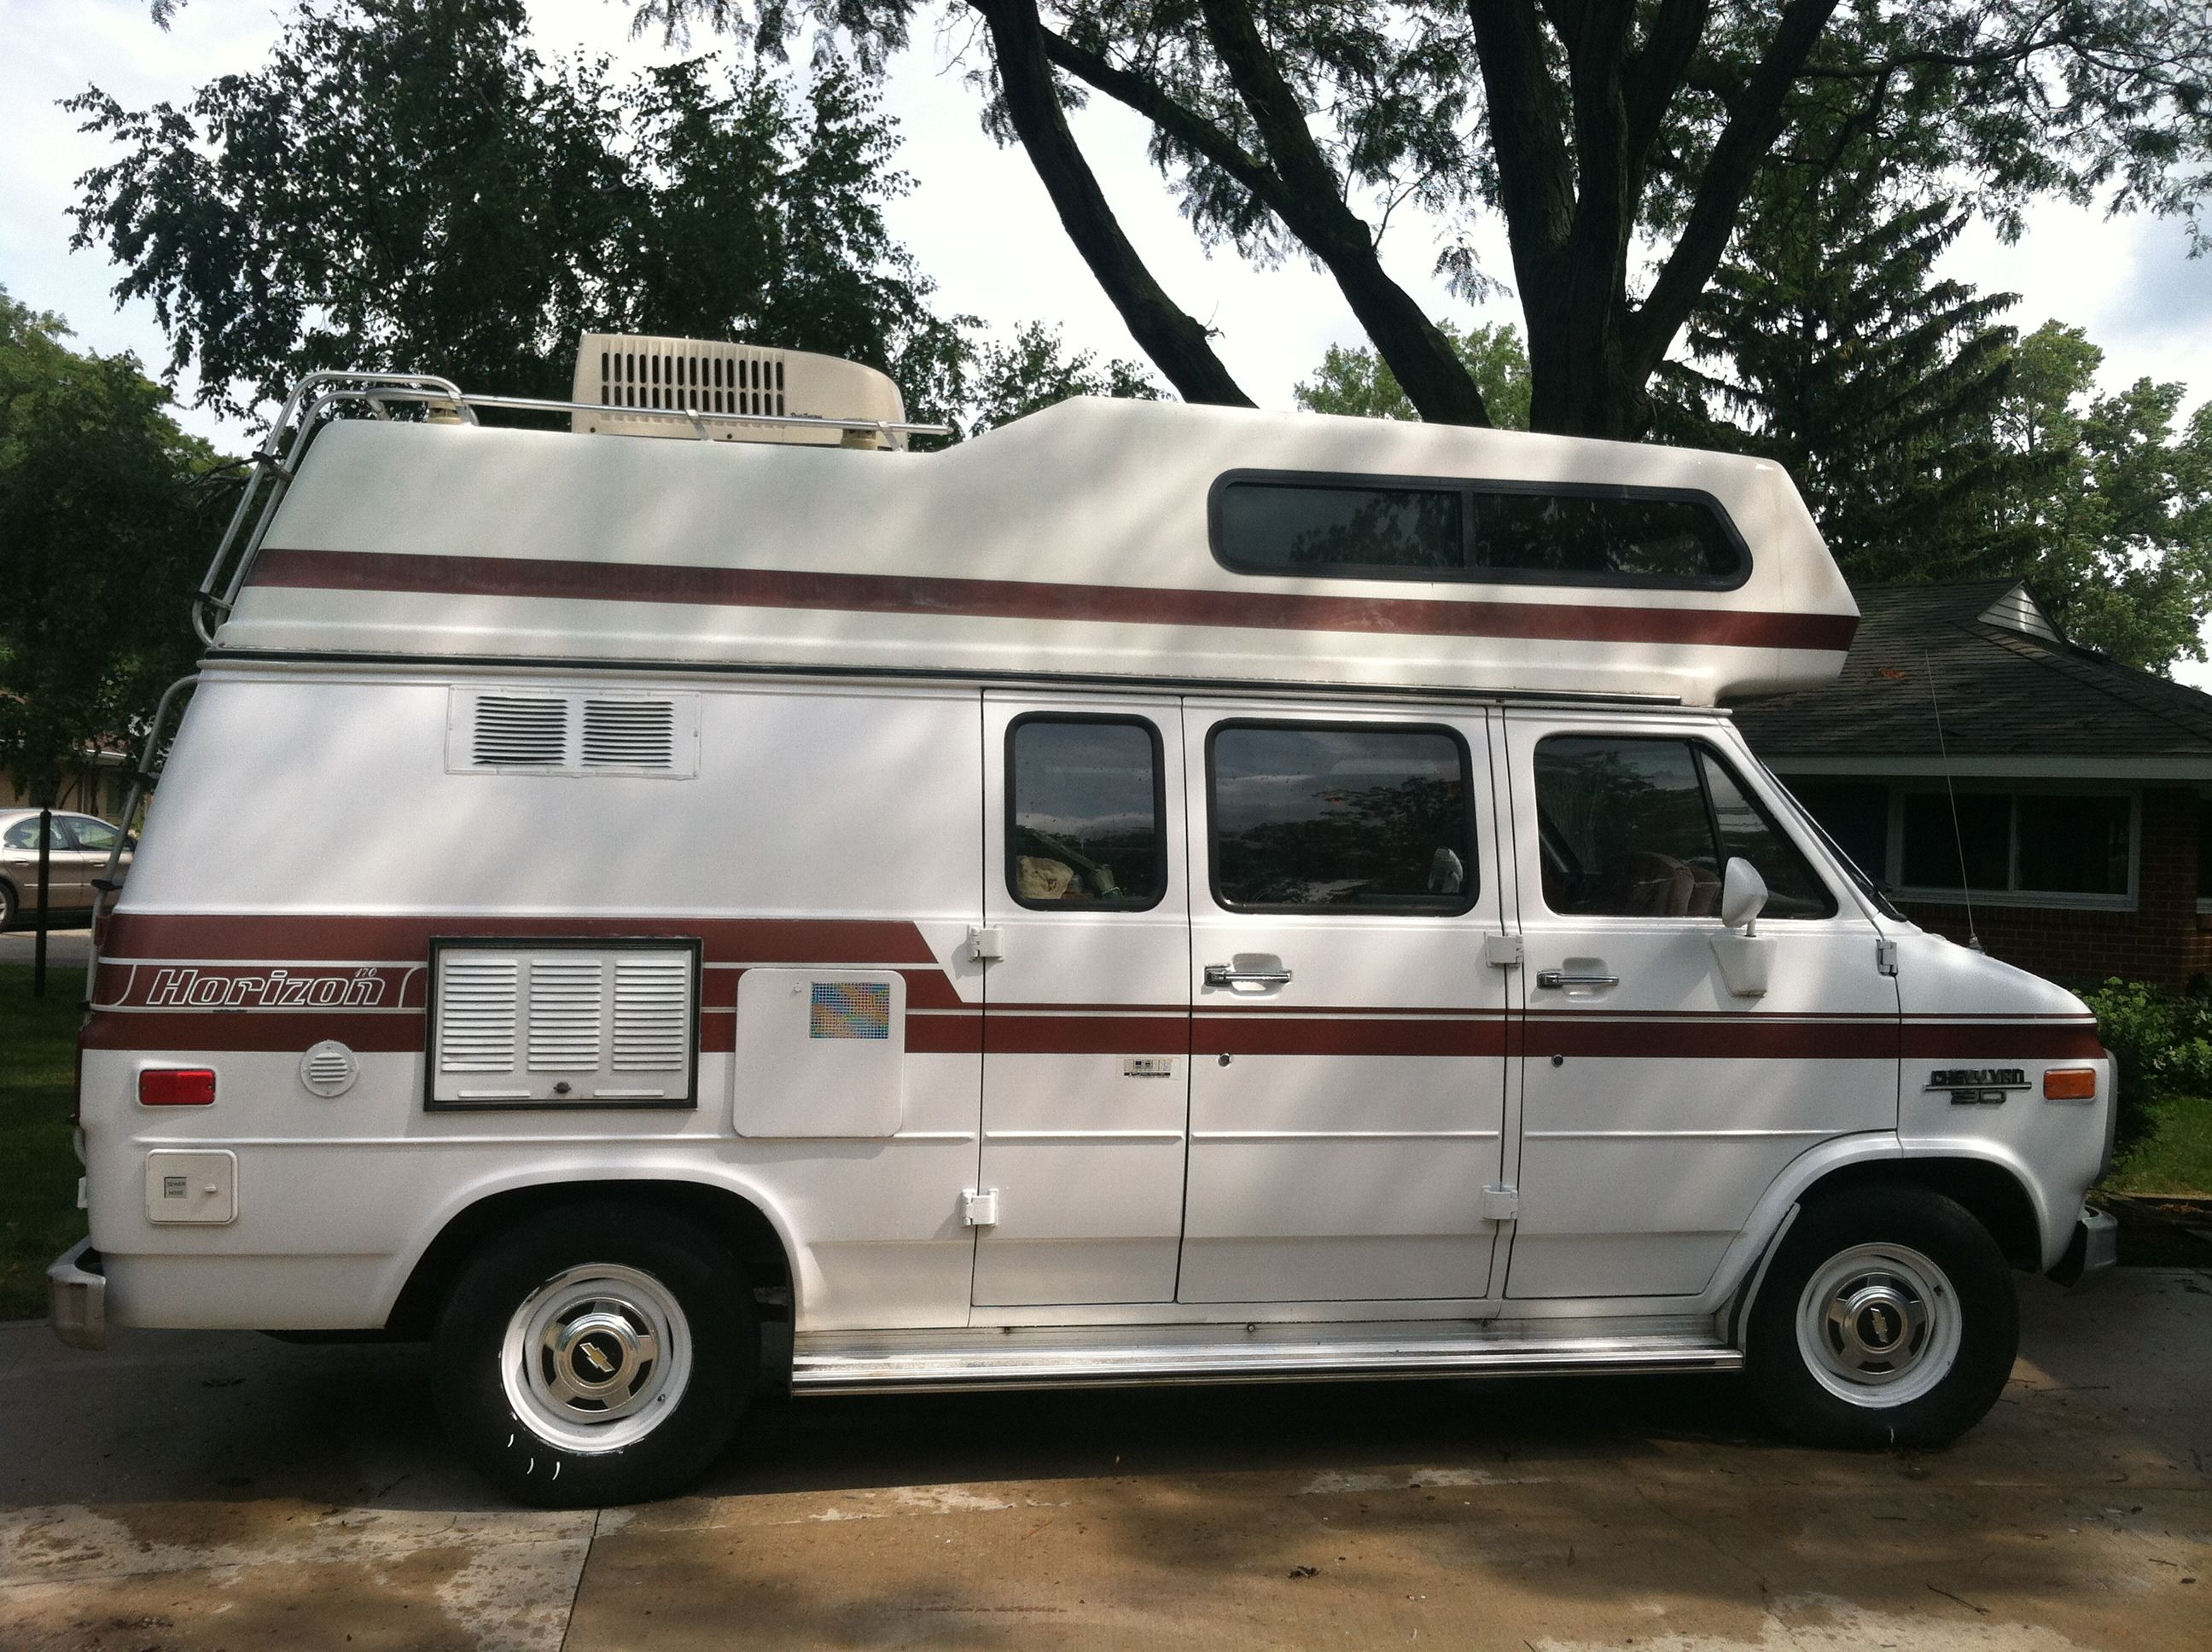 Our 1989 Chevy Horizon Camper Van Rv Pinterest